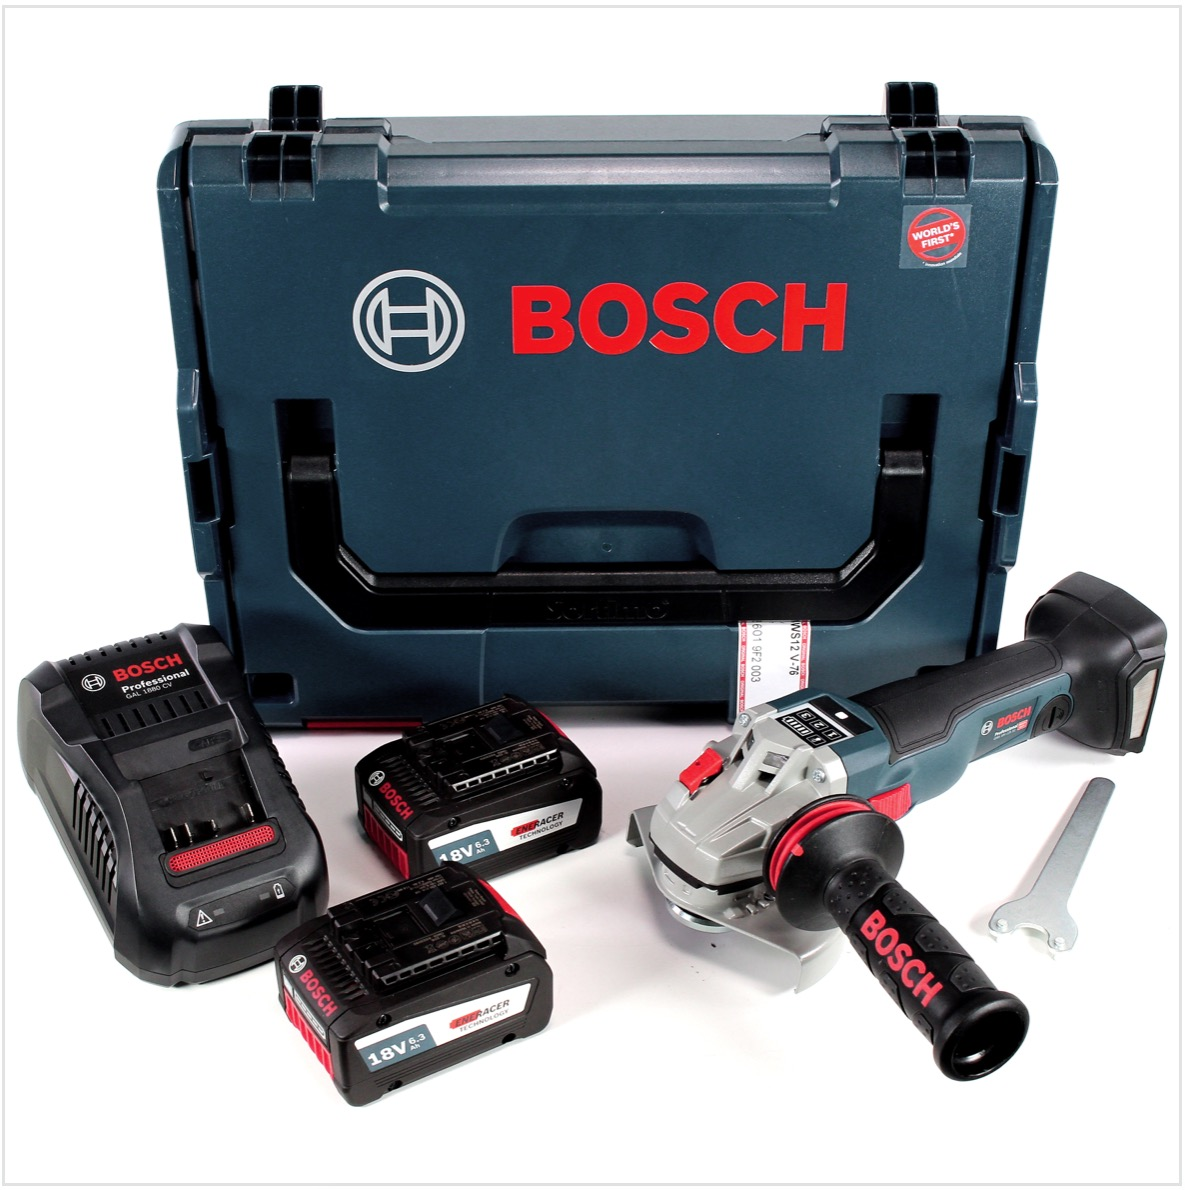 bosch gws 18 v 125 sc pro winkelschleifer 125mm brushless. Black Bedroom Furniture Sets. Home Design Ideas